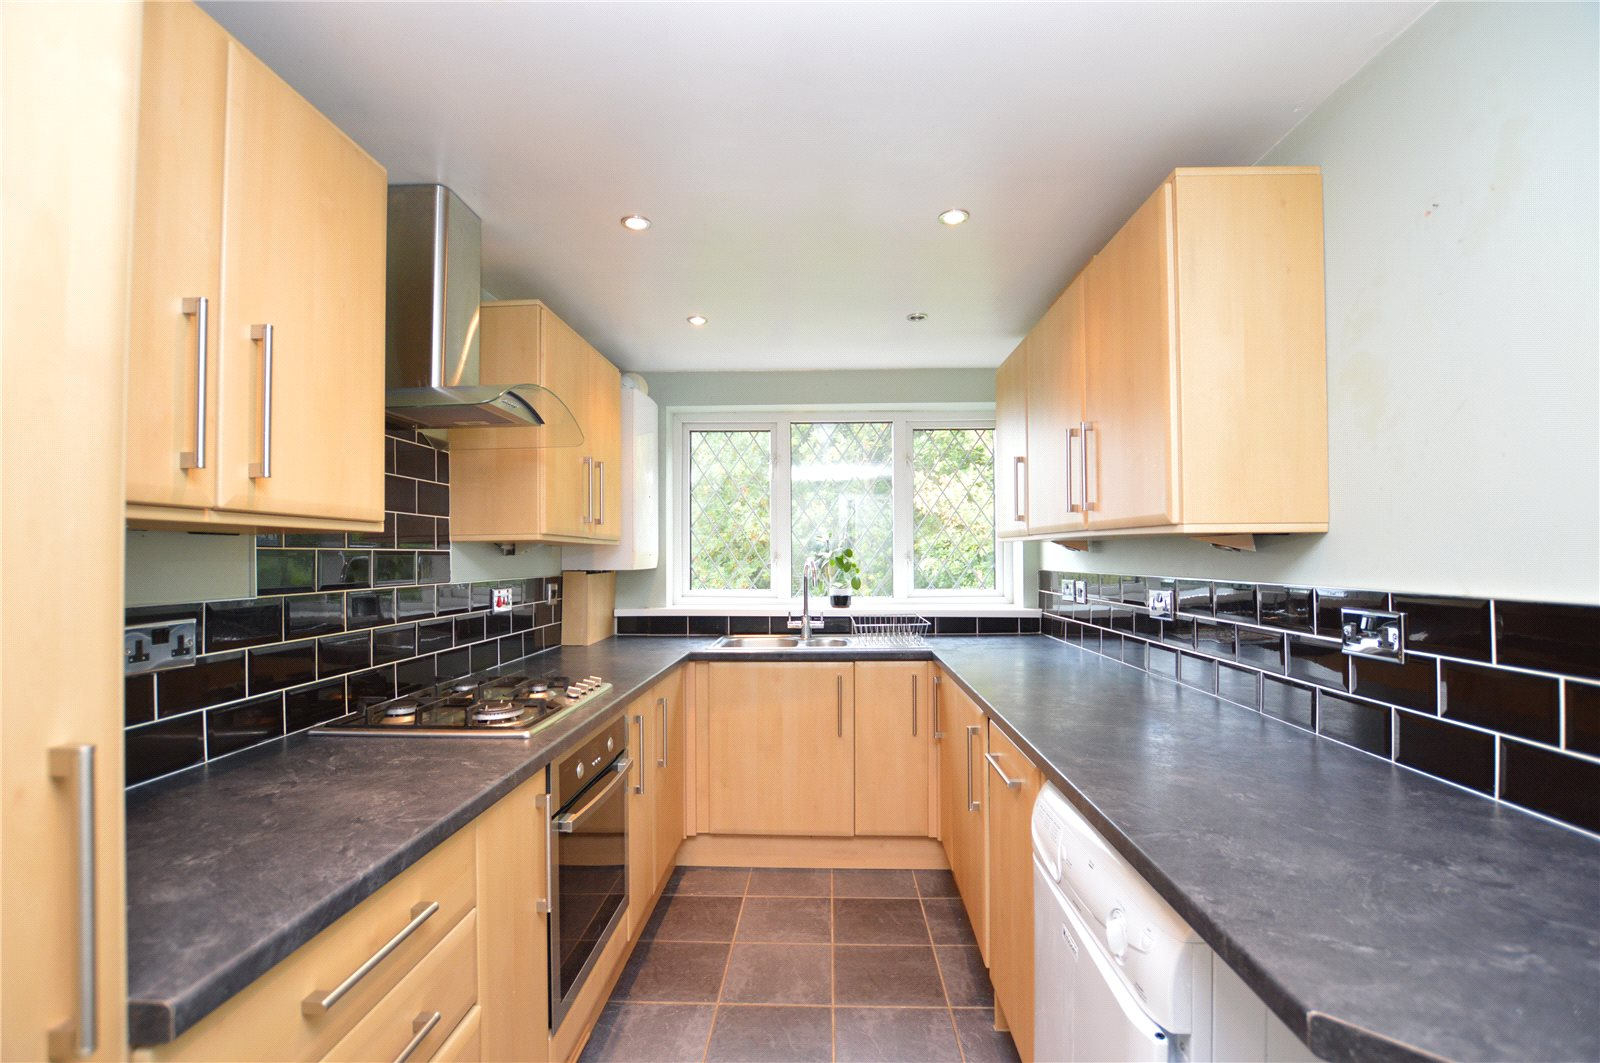 property for sale in Oakwood. Gallery kitchen modern kitchen fittings